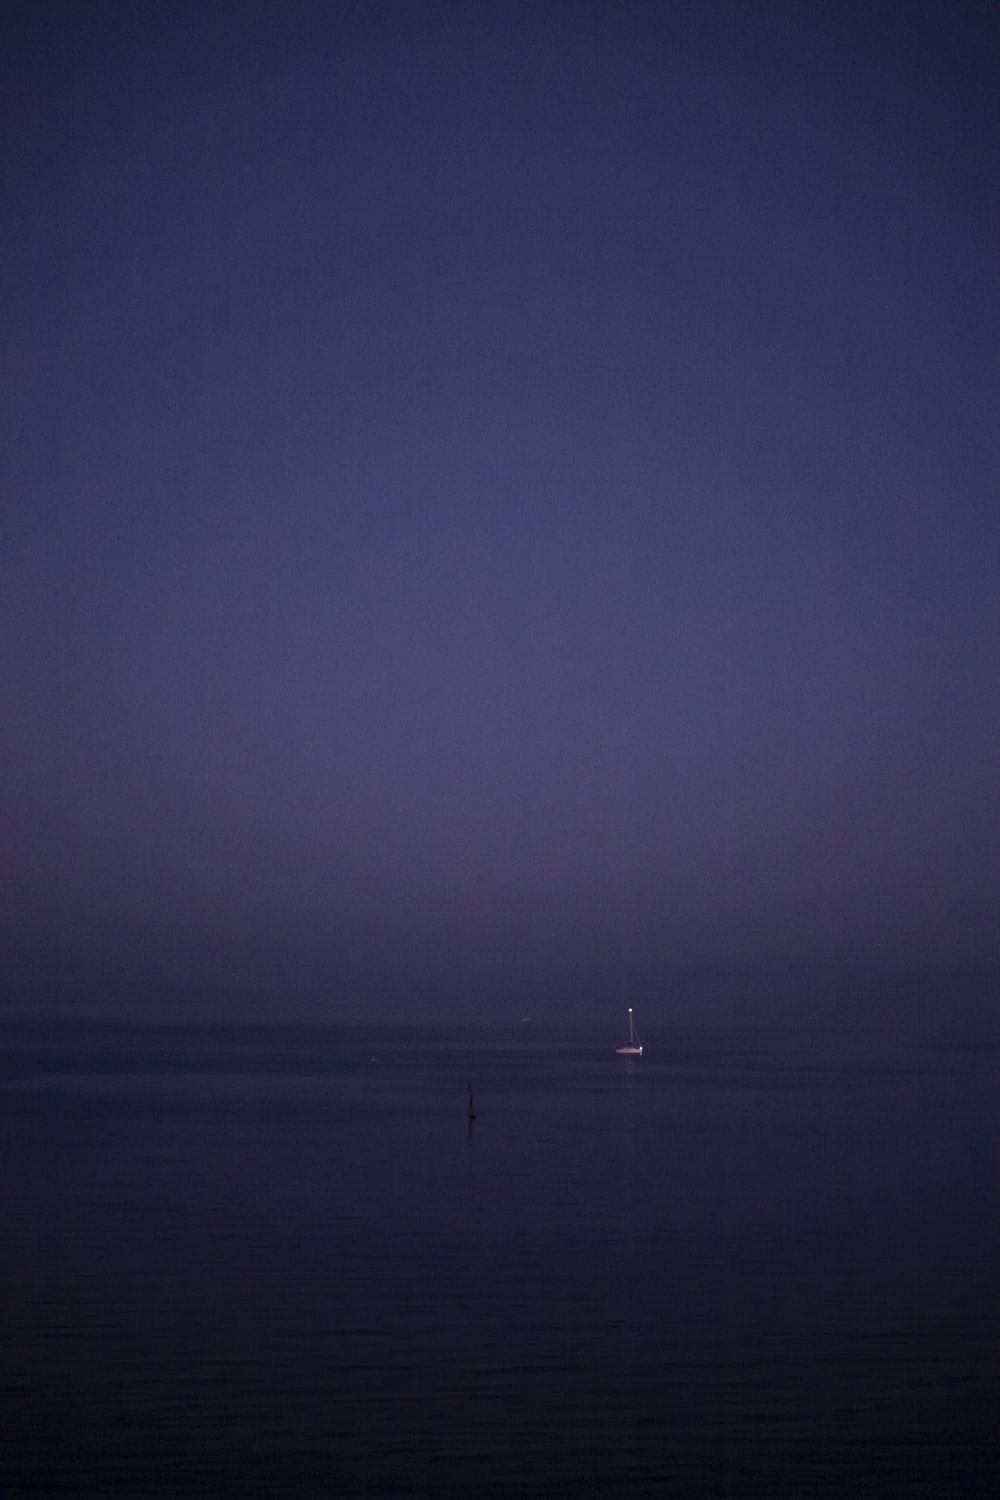 body of water under gray sky at night